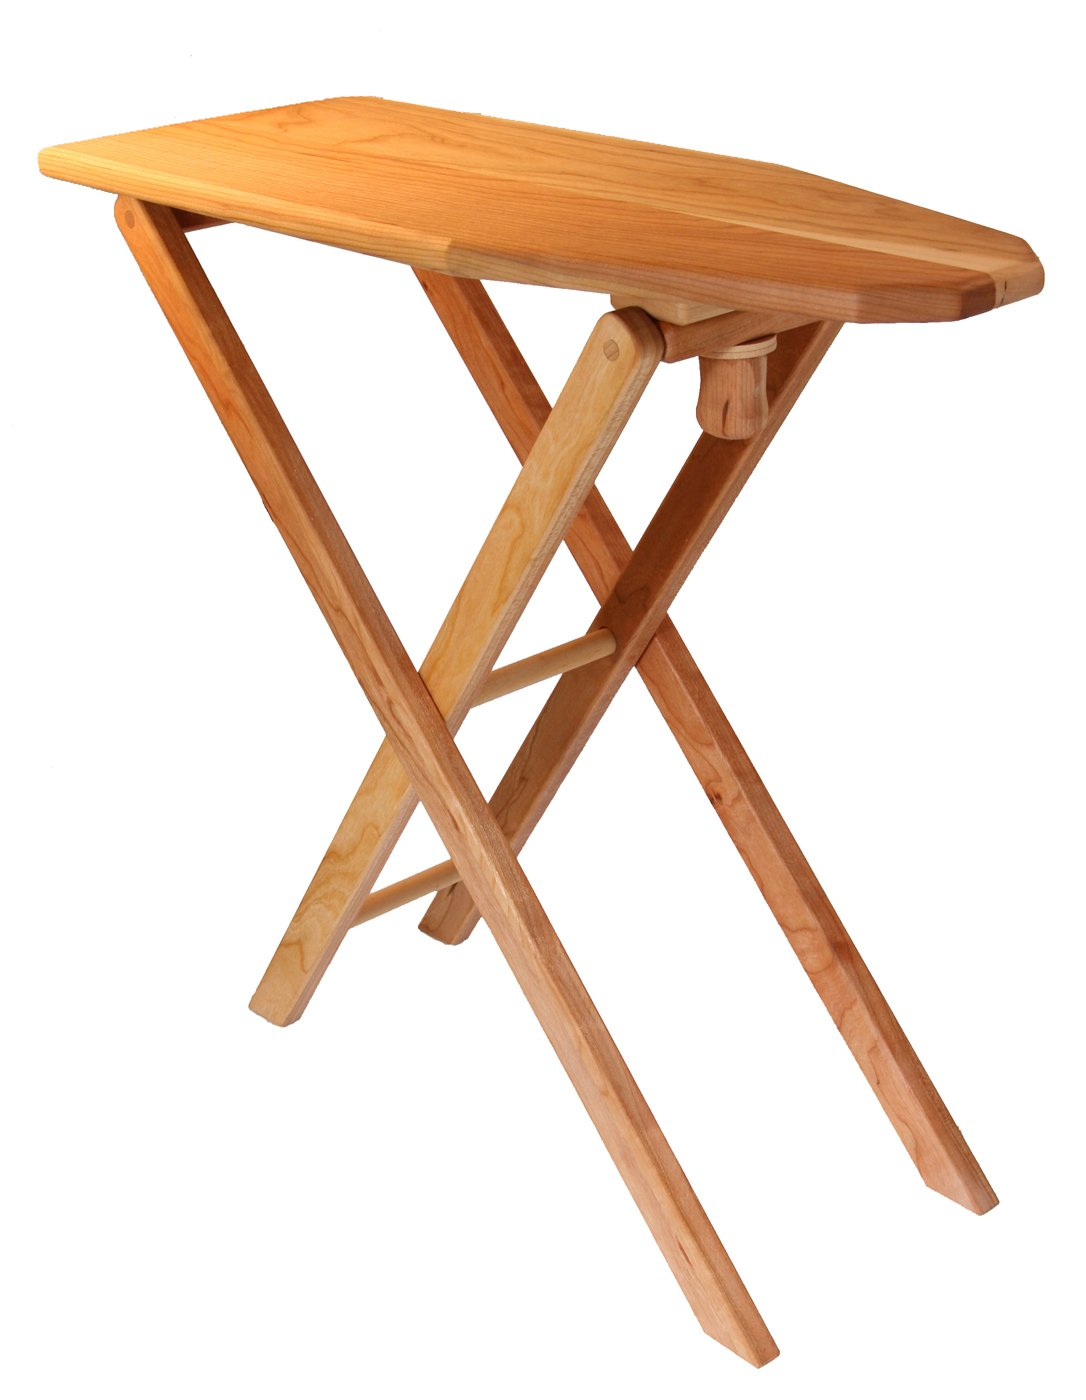 Camden Rose Child's Cherry Wood Play Ironing Board by Camden Rose